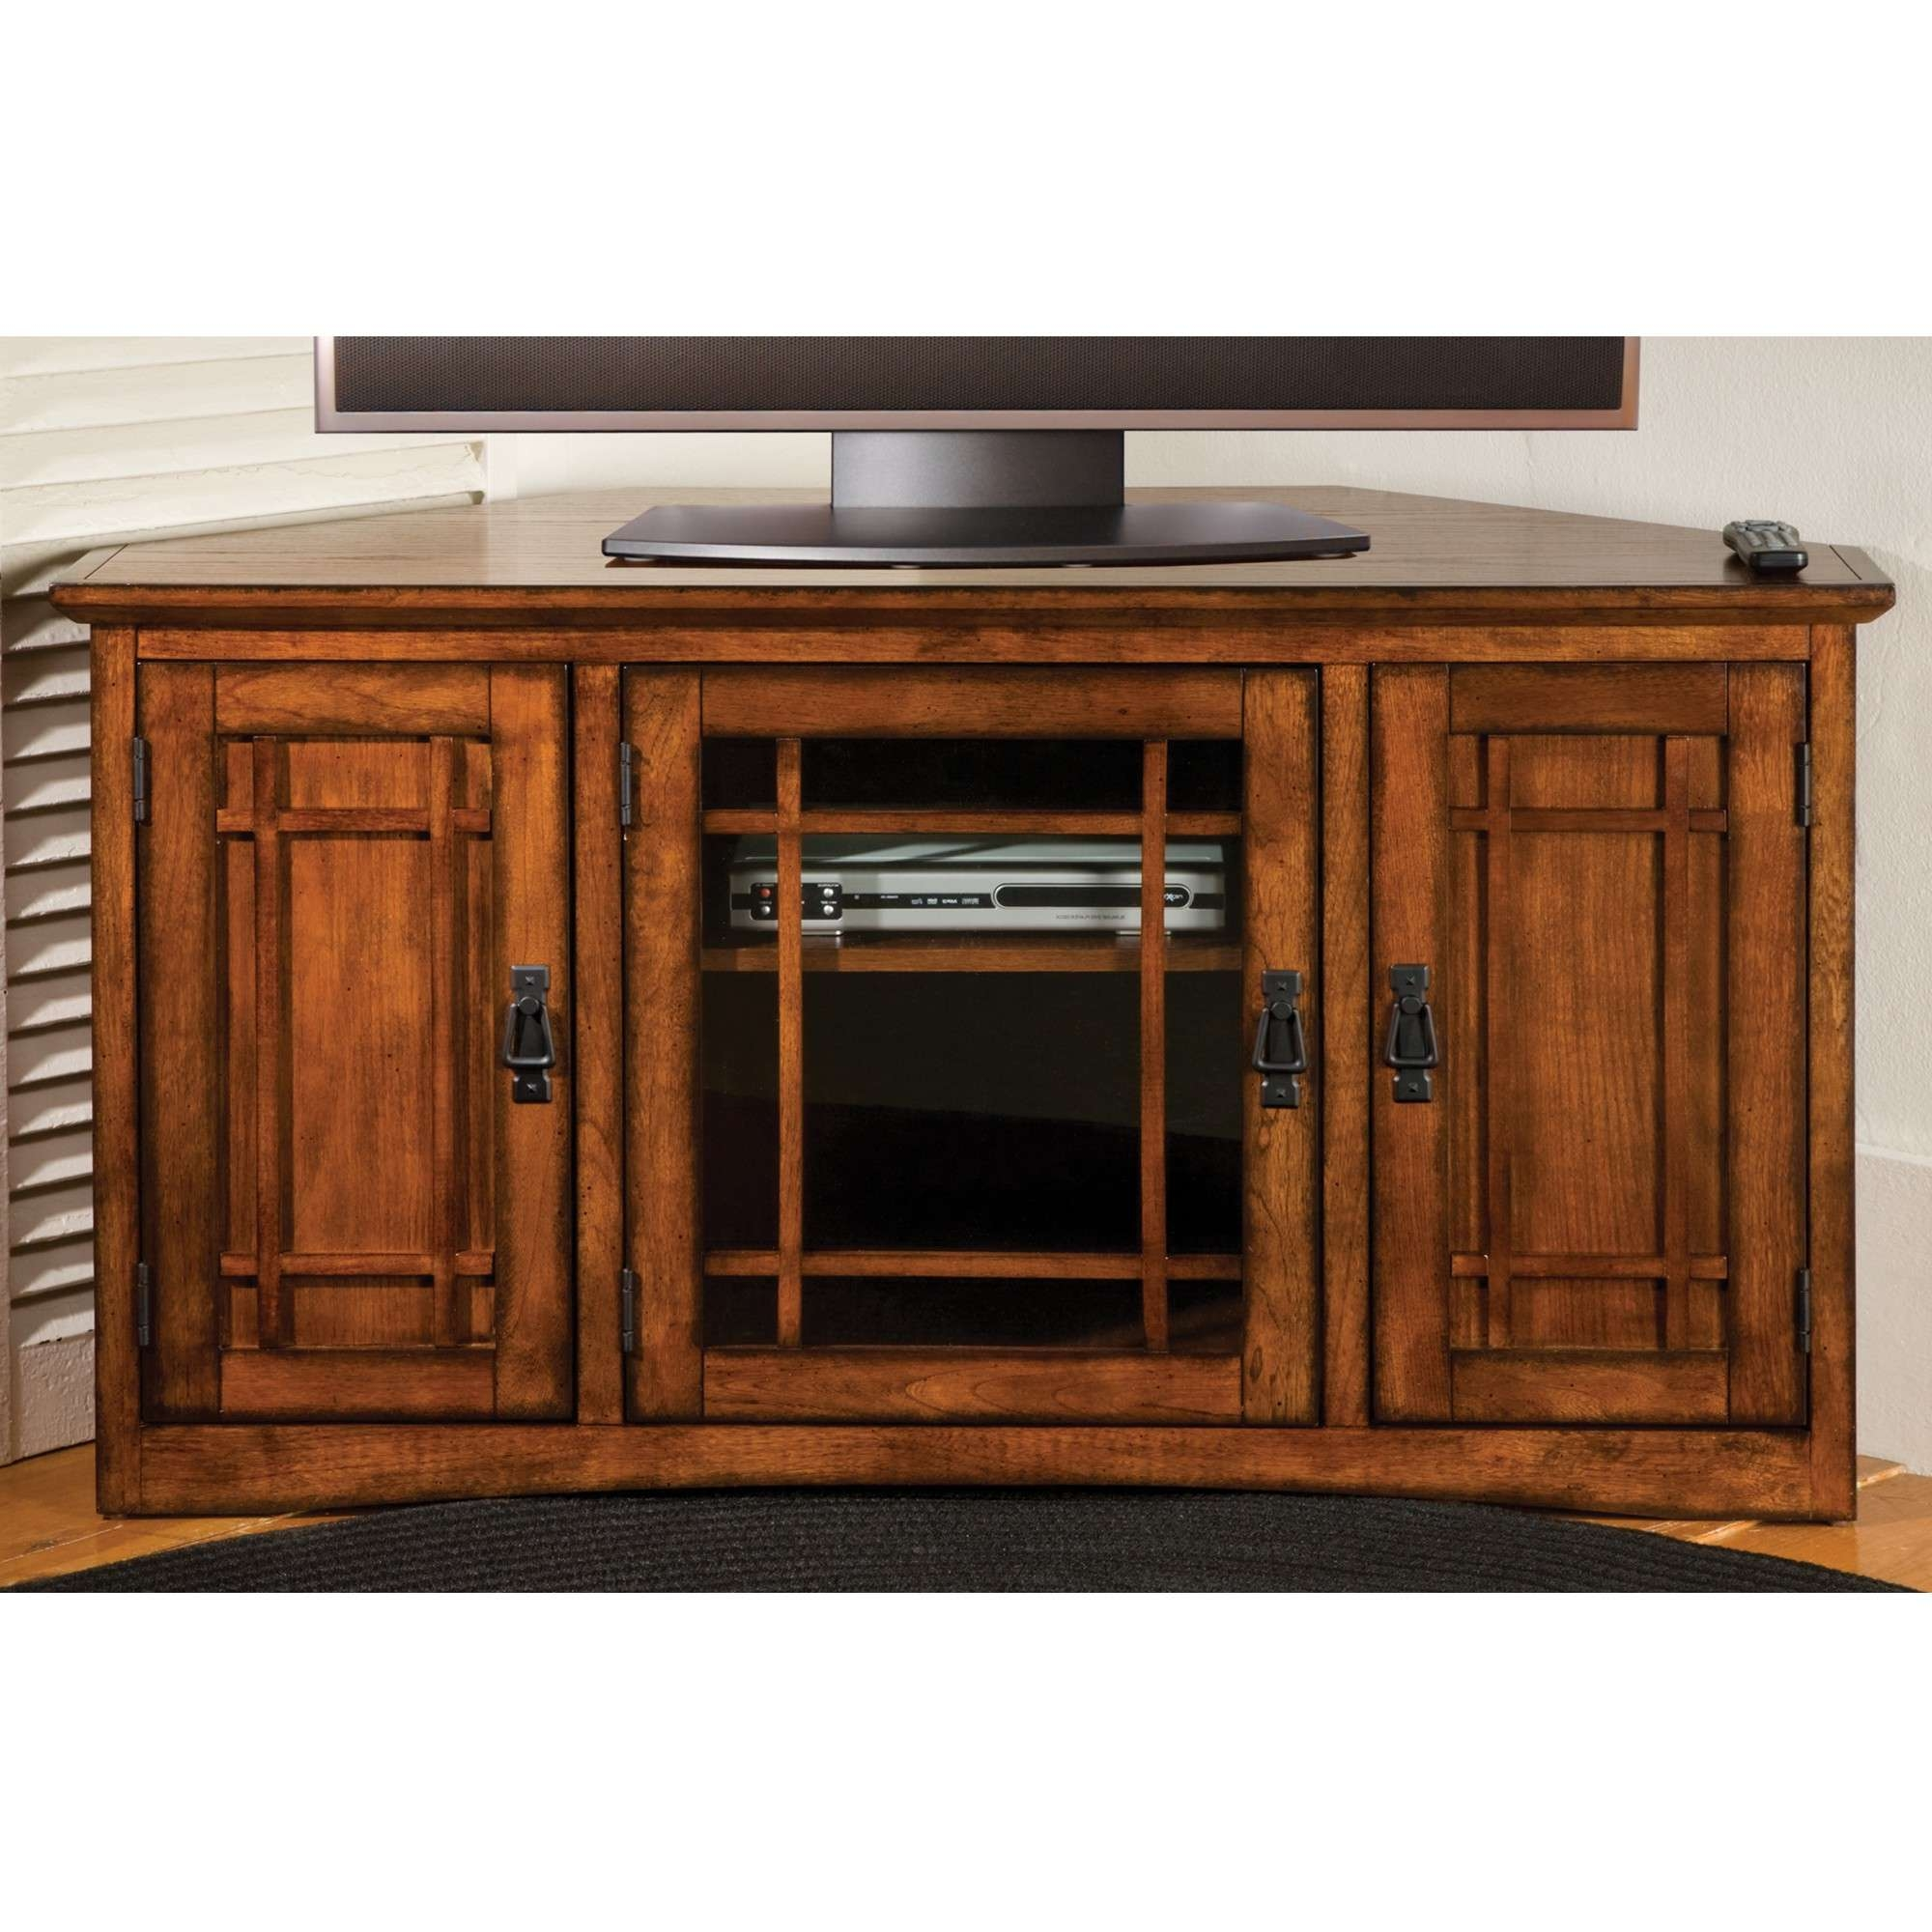 20 Best Wooden Tv Cabinets With Glass Doors